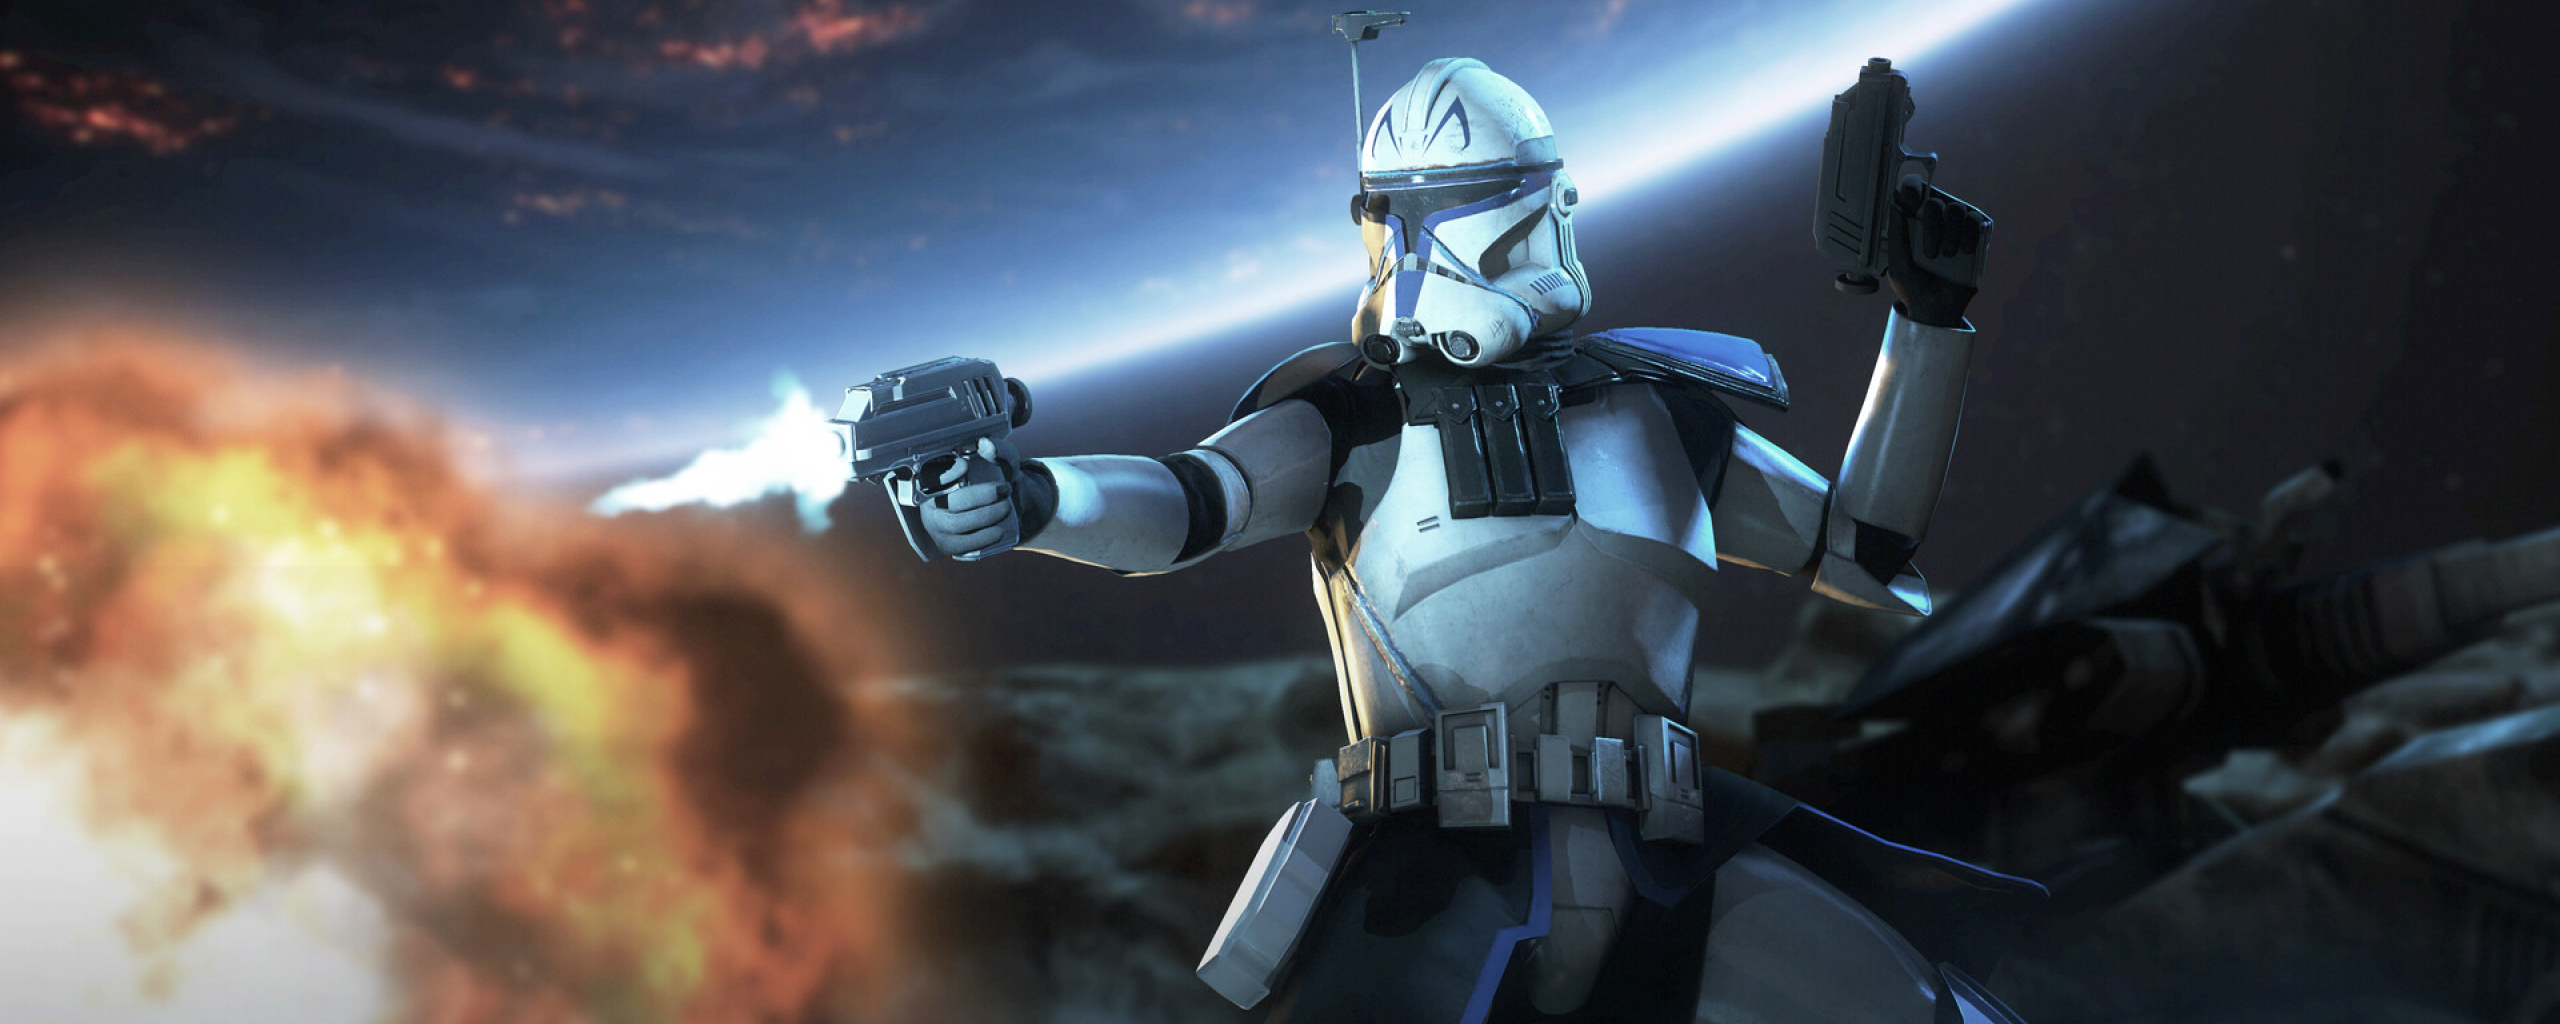 2560x1024 Captain Rex Star Wars Republic Commando 2560x1024 Resolution Wallpaper Hd Games 4k Wallpapers Images Photos And Background Wallpapers Den